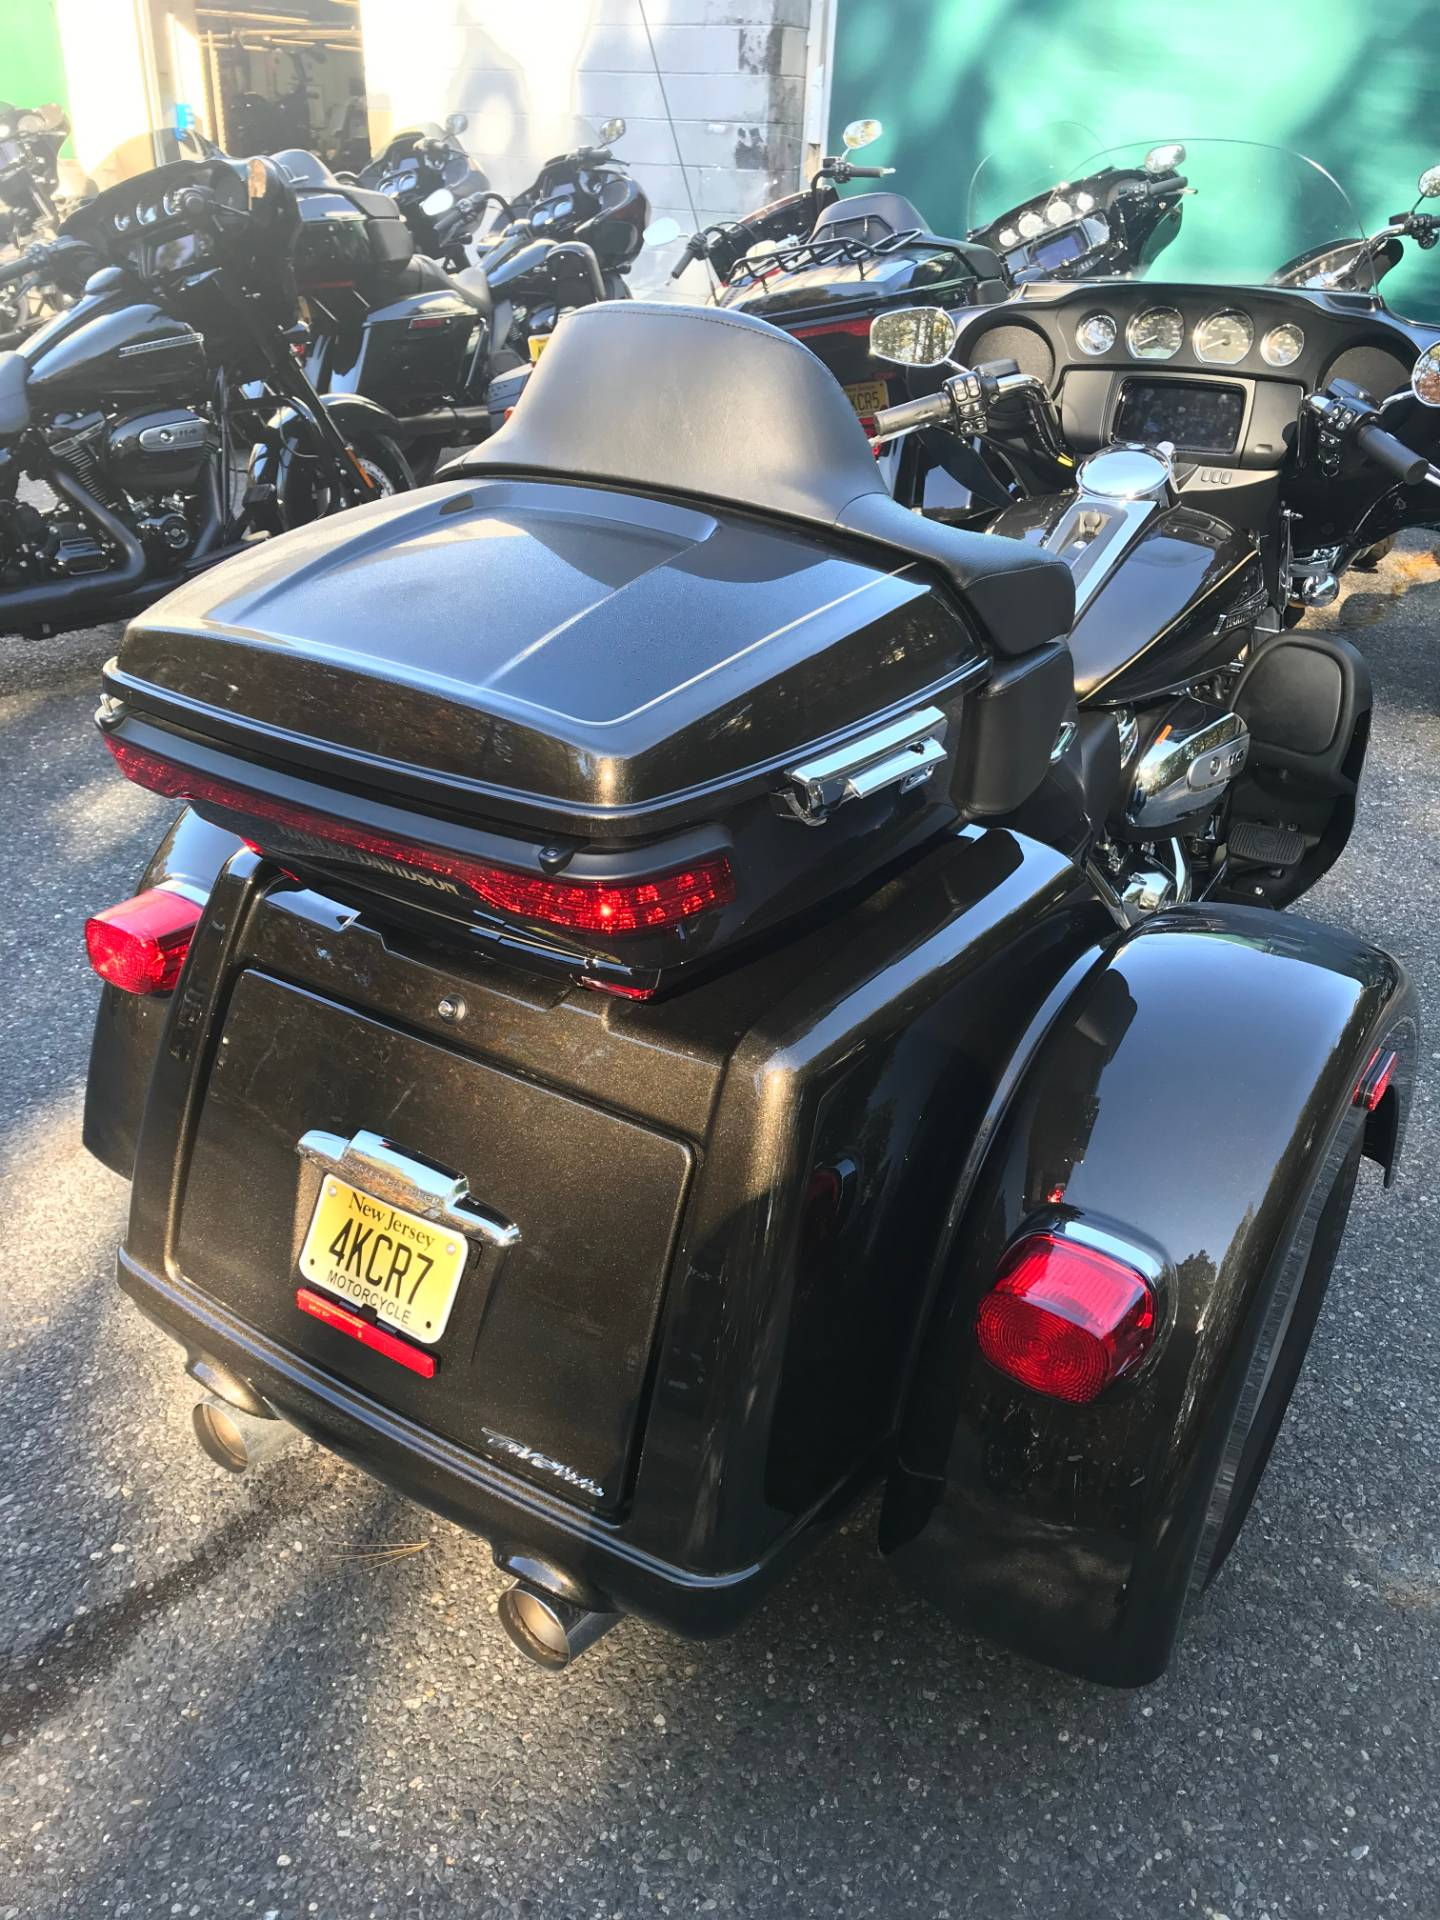 2020 Harley-Davidson ULTRA TRI-GLIDE TRIKE in Lakewood, New Jersey - Photo 5